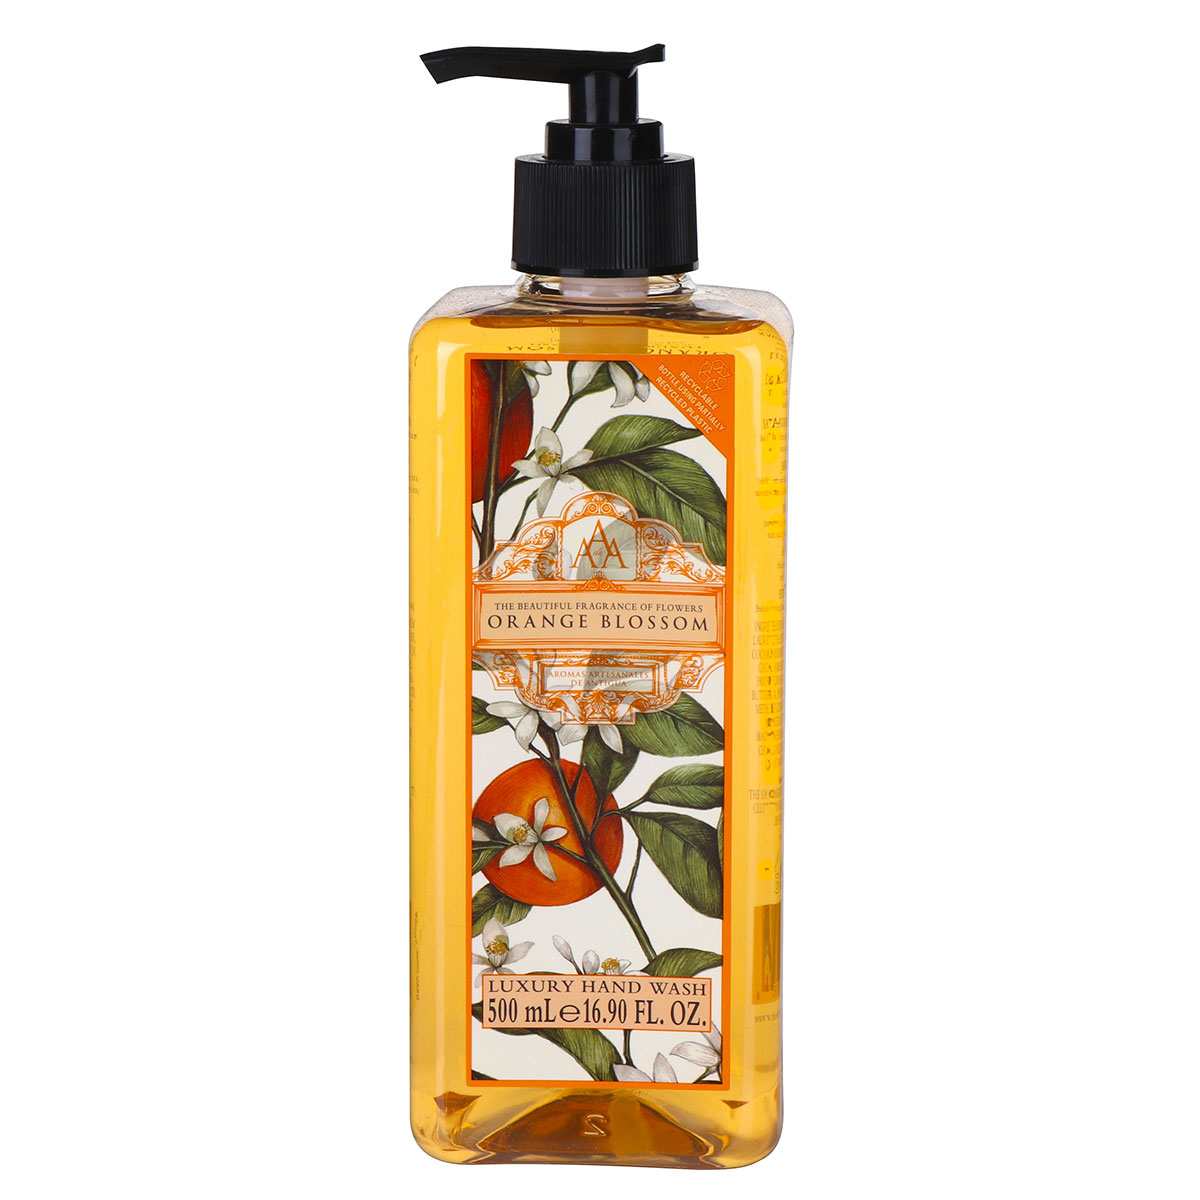 The Somerset Toiletry Co AAA Orange Blossom 500ml Hand Wash